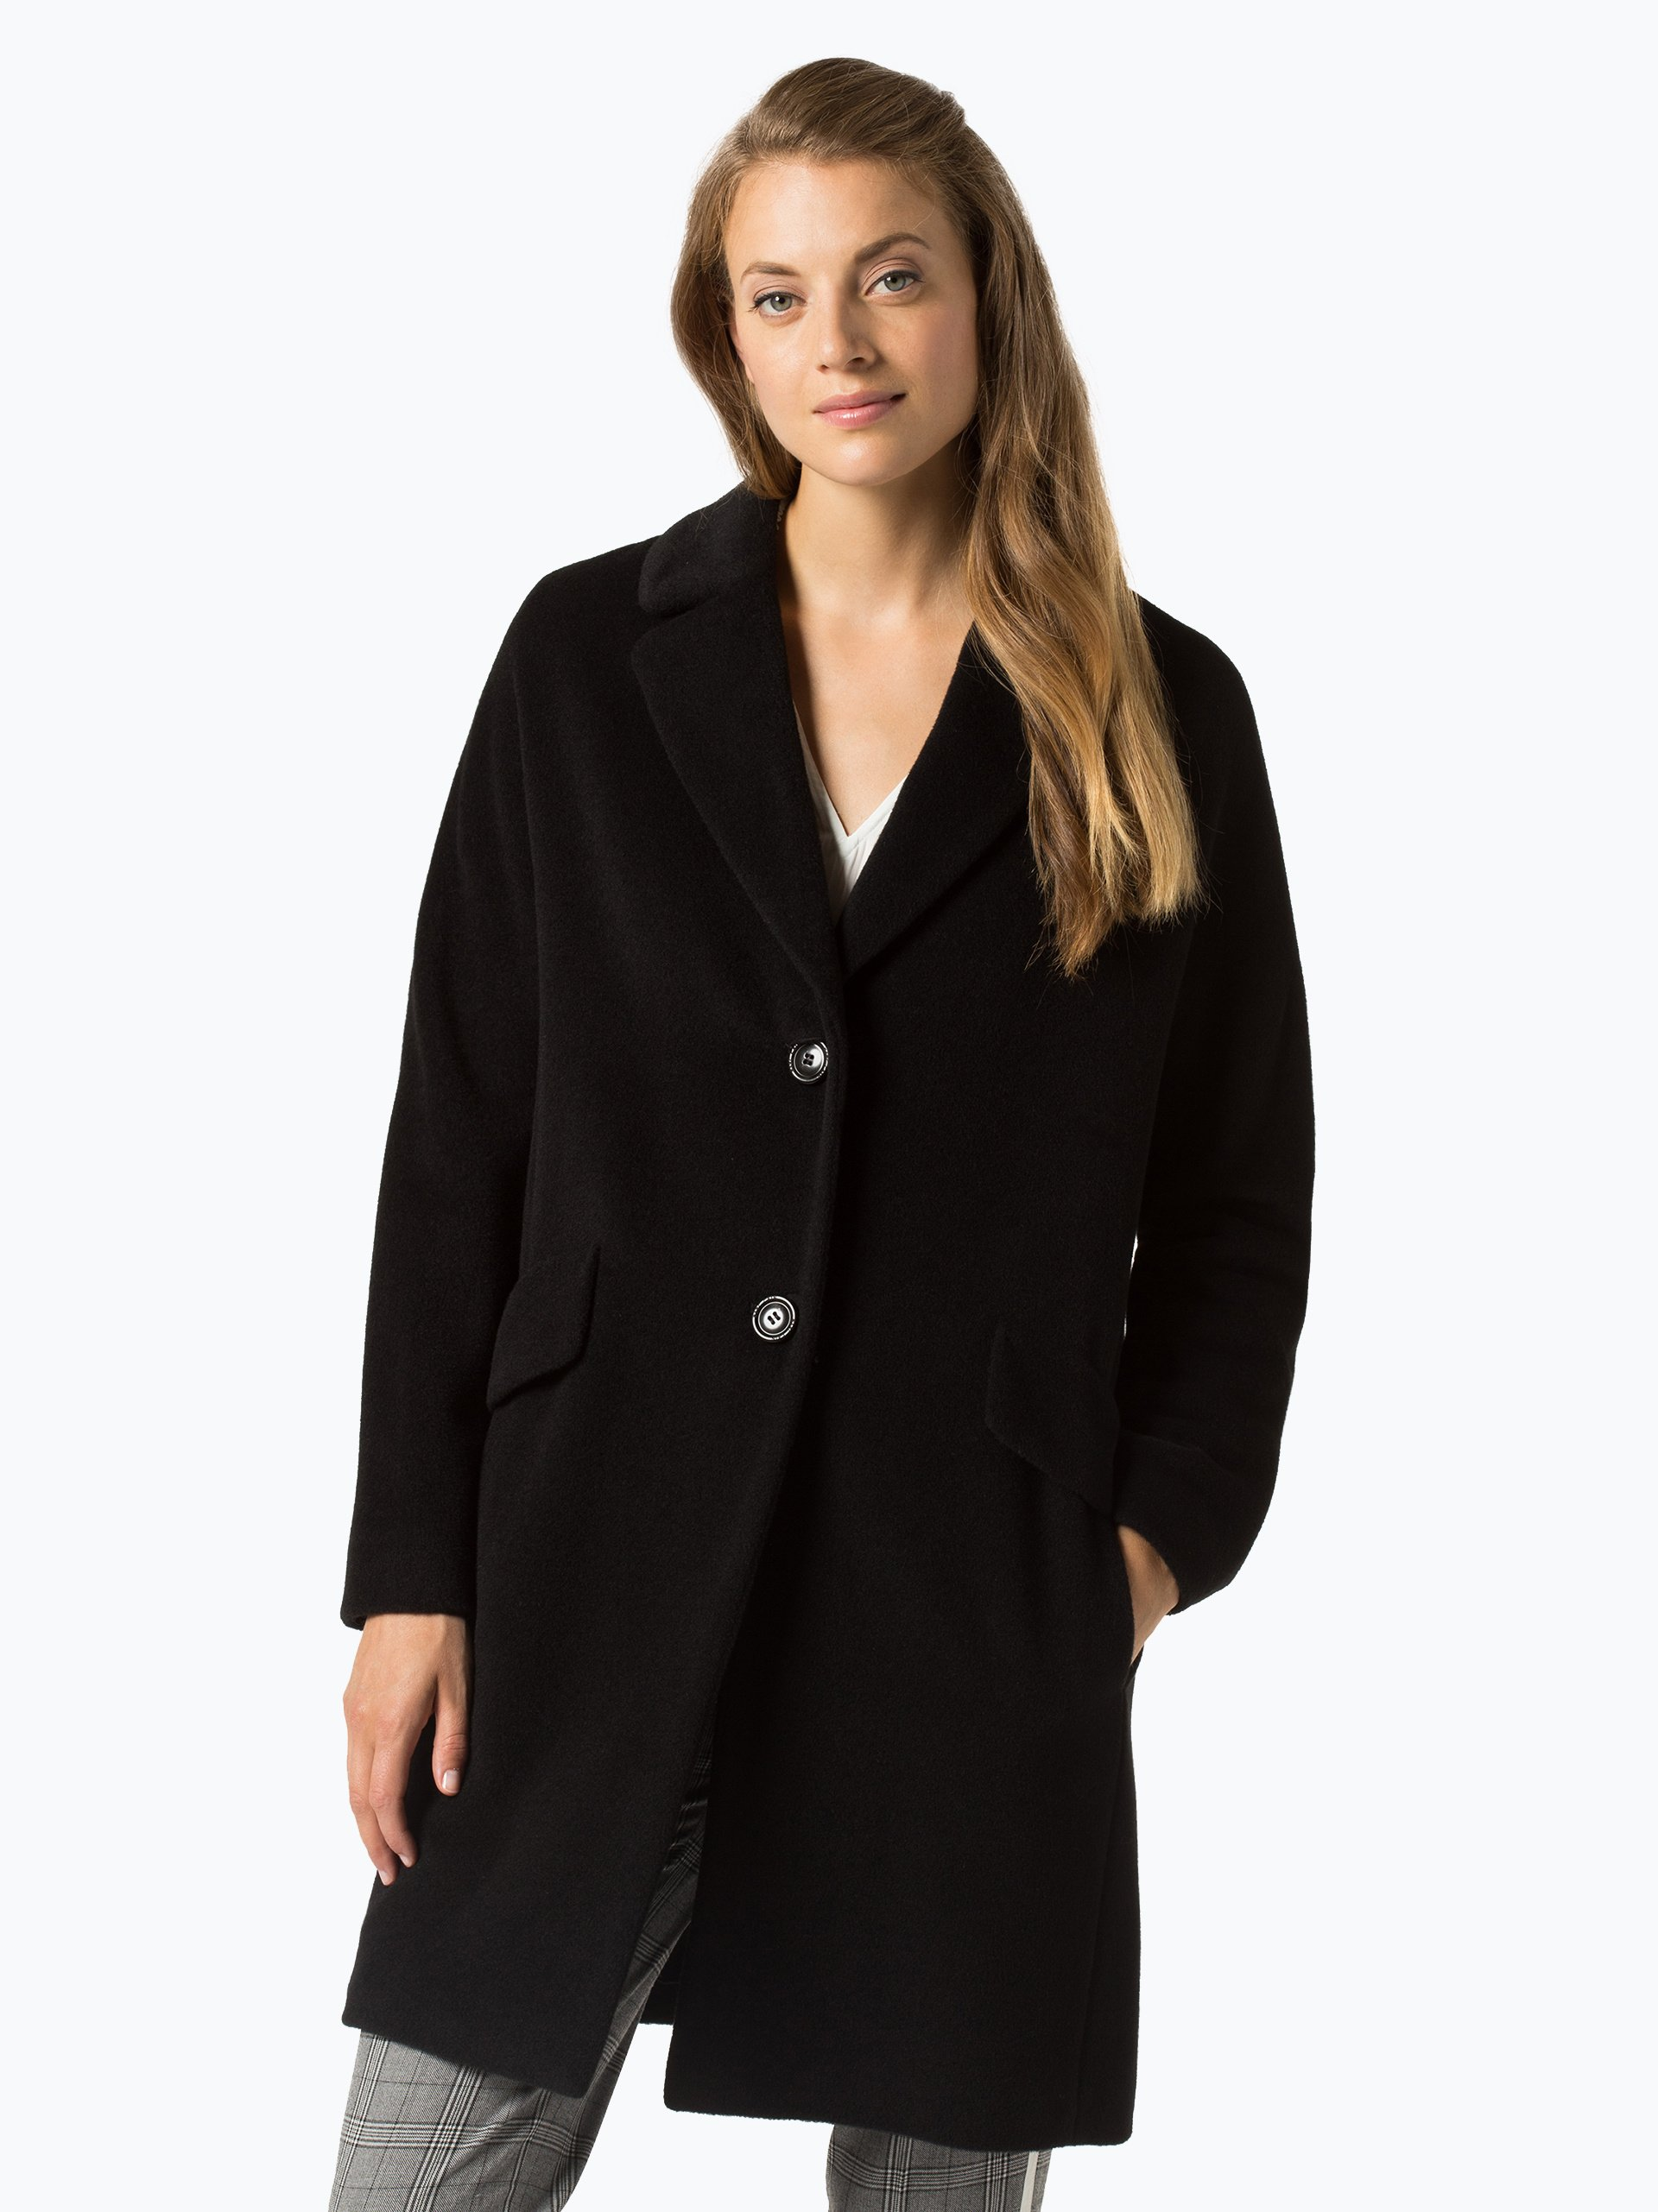 Marc Cain Additions Damen Mantel mit Alpaka-Anteil